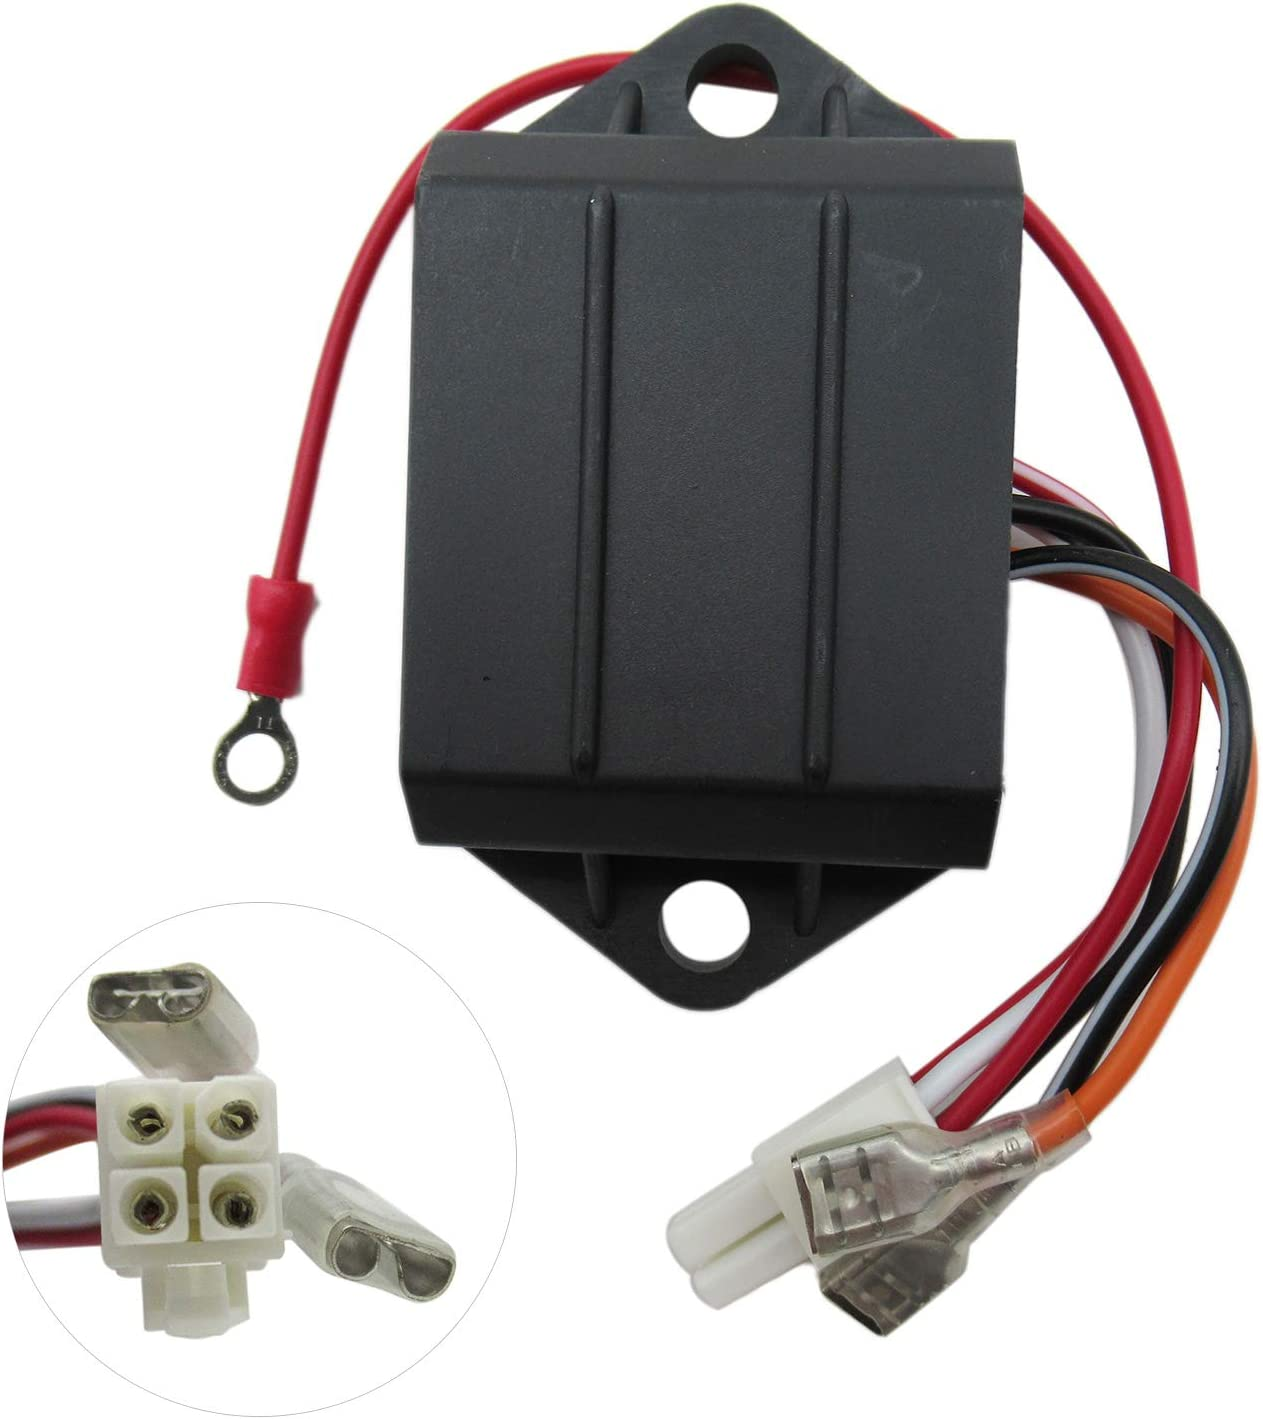 WGL New Replacement CDI Ignitor for cycle 4 EZ-Go Cart Golf Ultra-Cheap Deals 5 popular gas